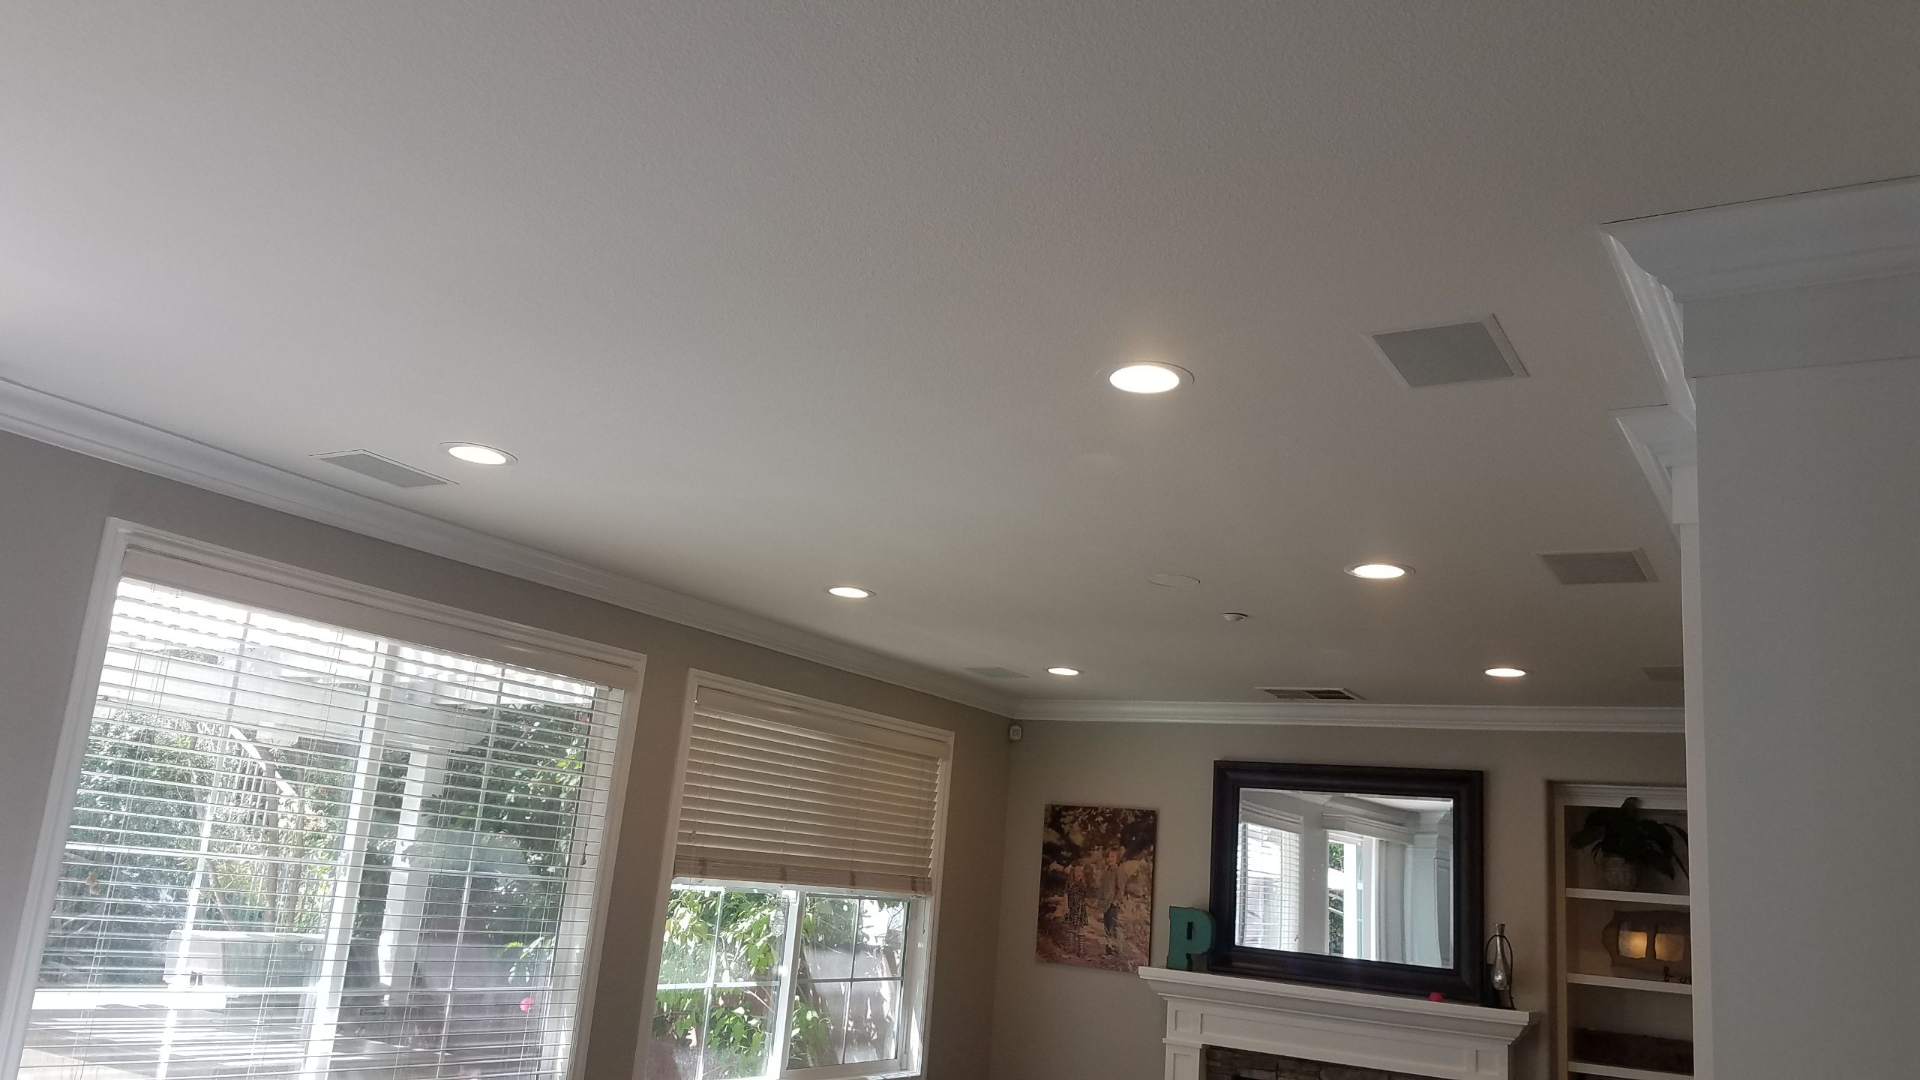 Remodel Versus New Construction Recessed Lighting Orange County,Mosaic Kitchen Floor Tiles Ideas